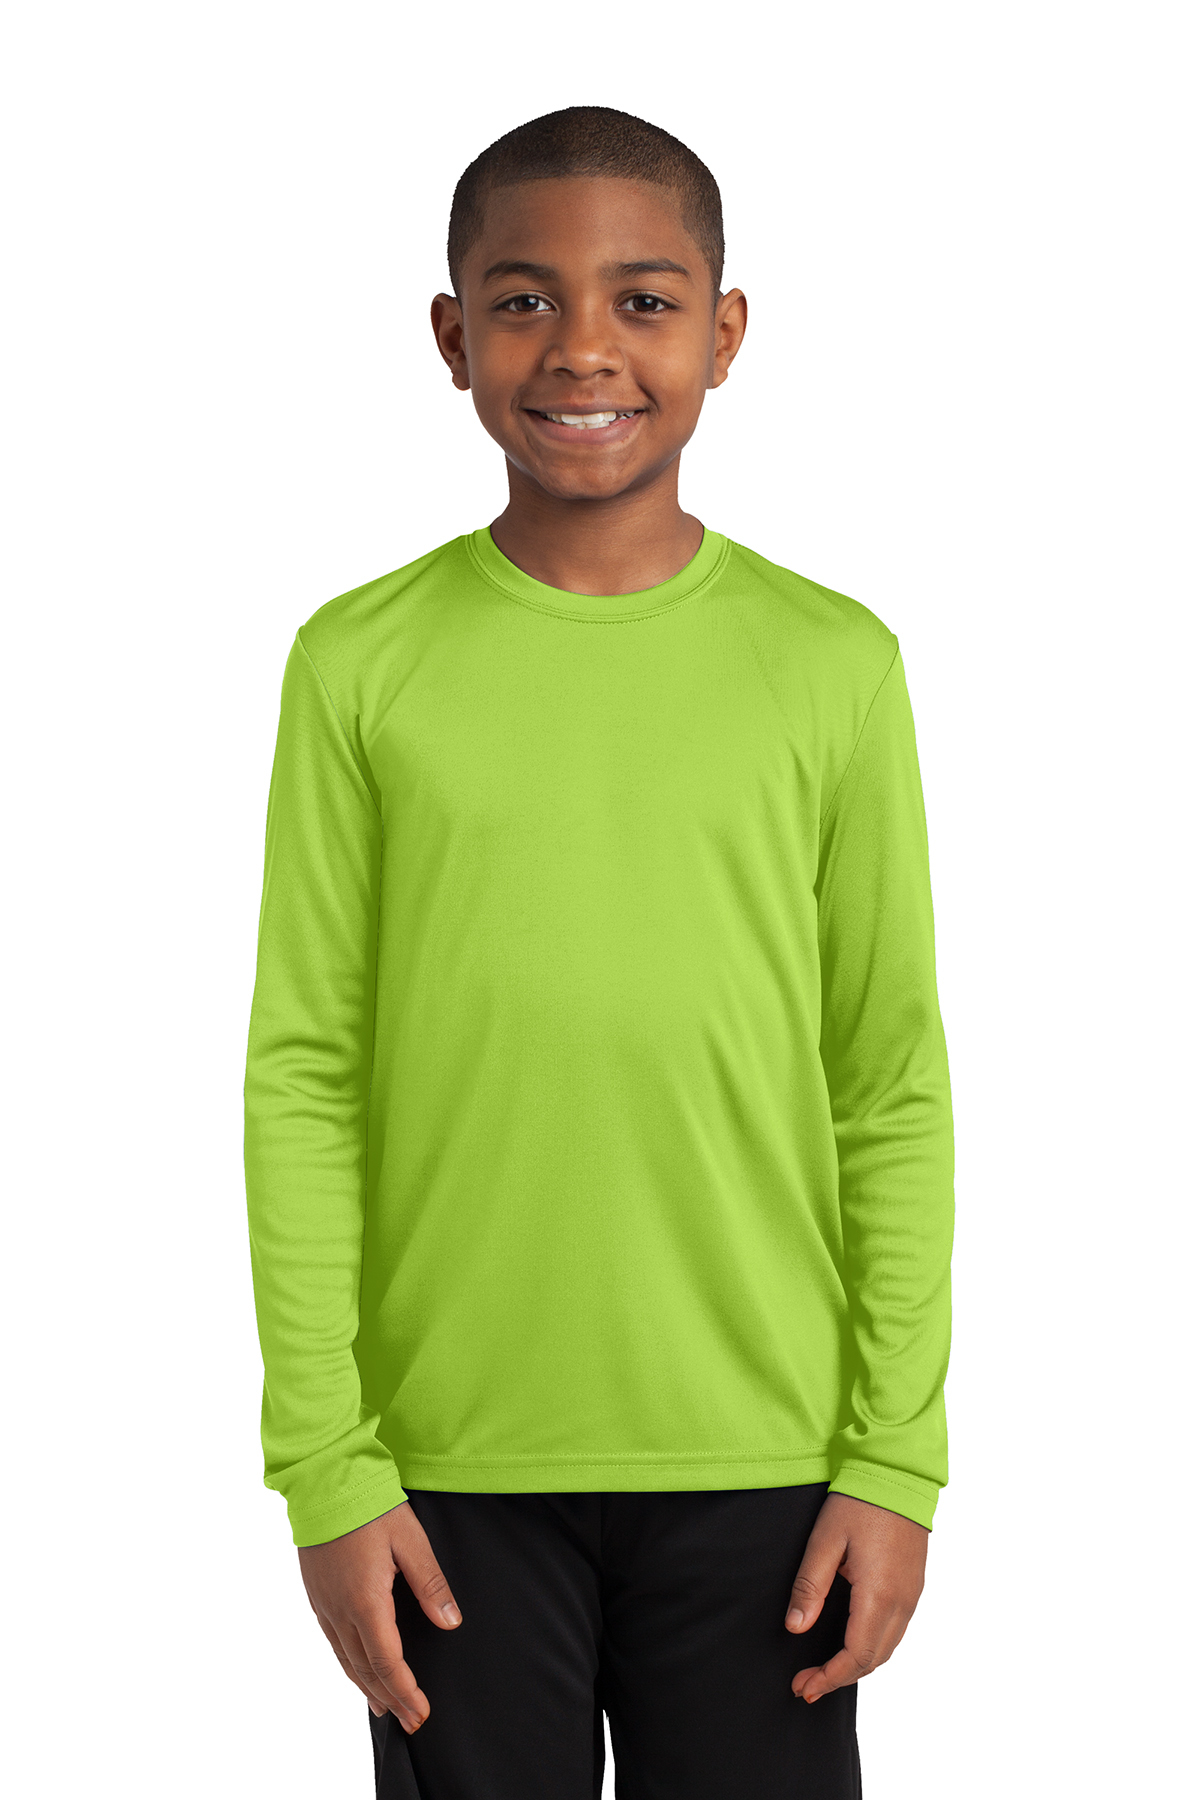 ed4f6908 Sport-Tek® Youth Long Sleeve PosiCharge® Competitor™ Tee | Long ...